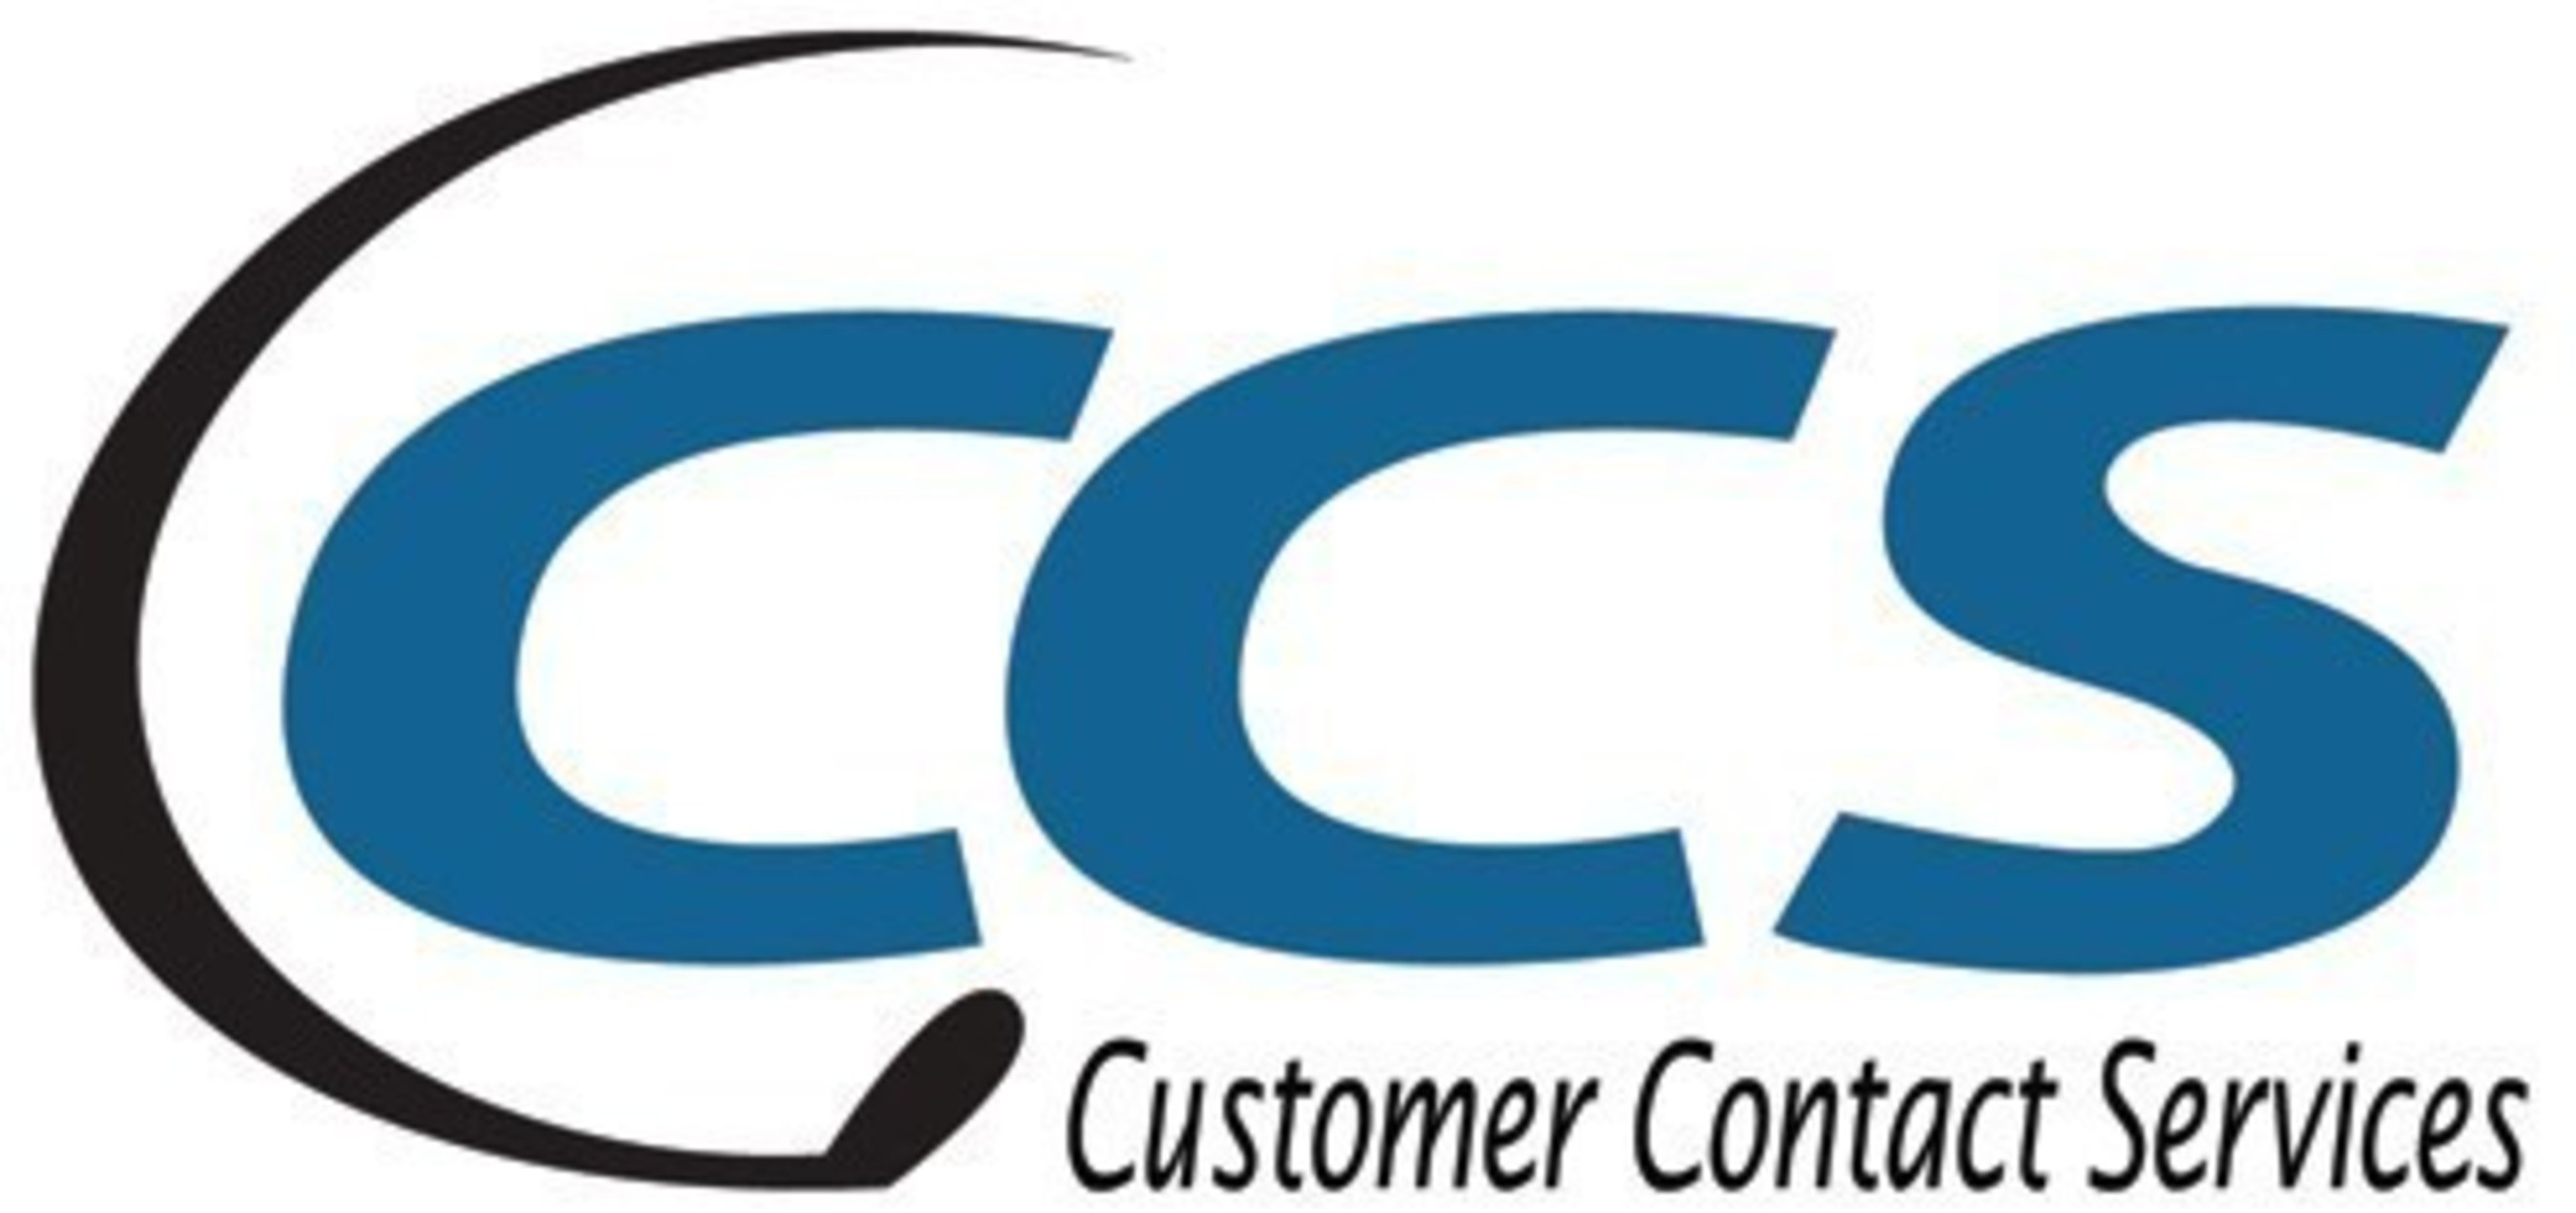 CCS has Earned Position 3803 on the 2015 Inc. 5000